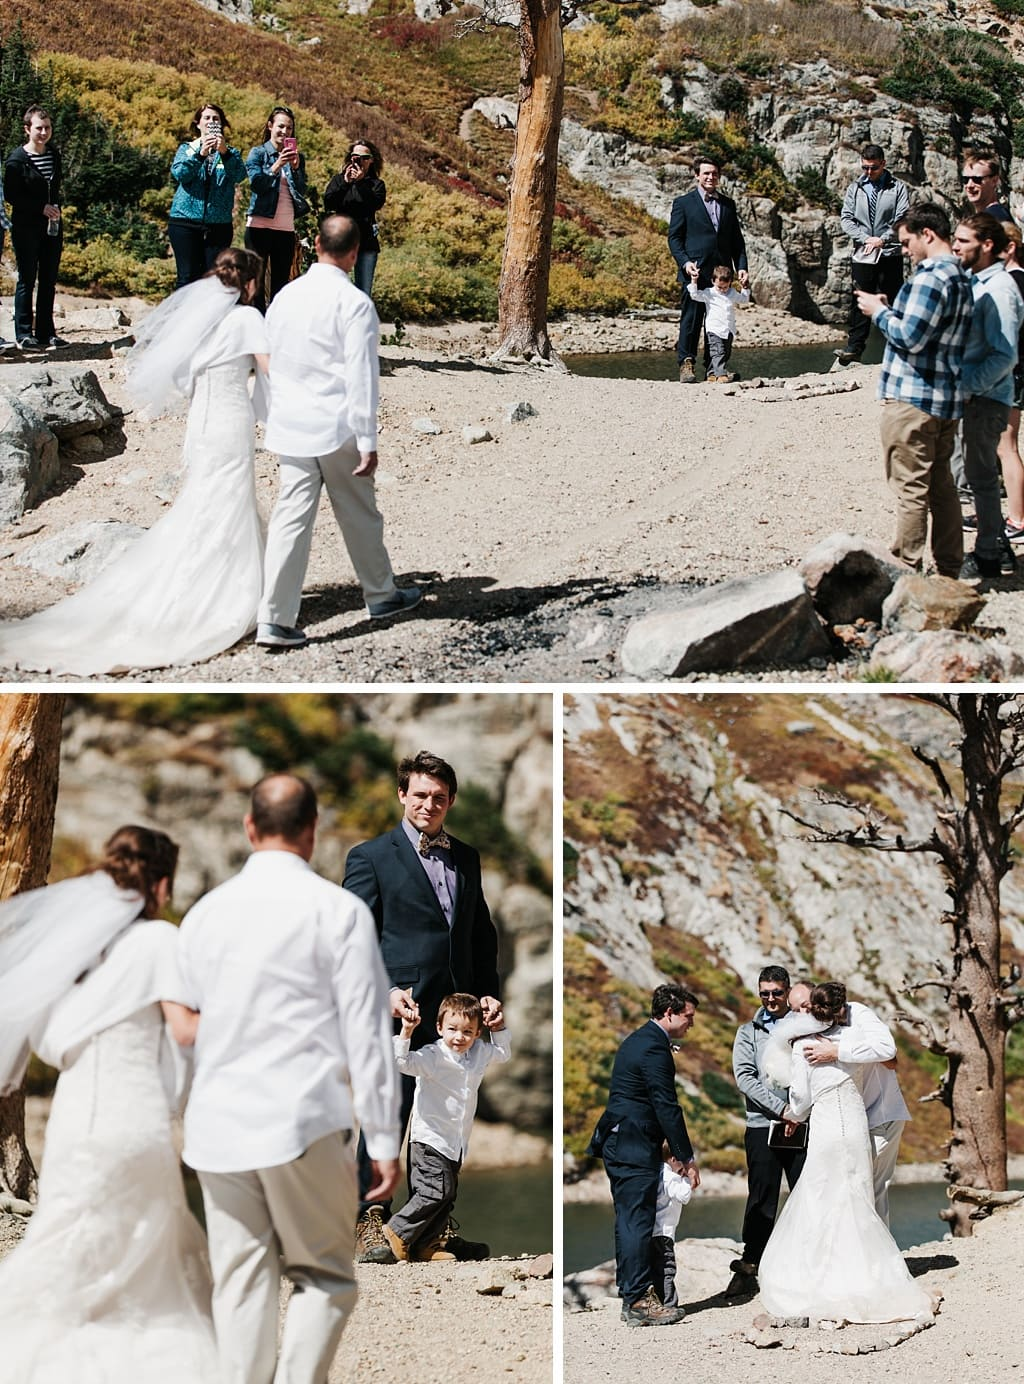 Bride walking down the trail with her father to where groom is waiting